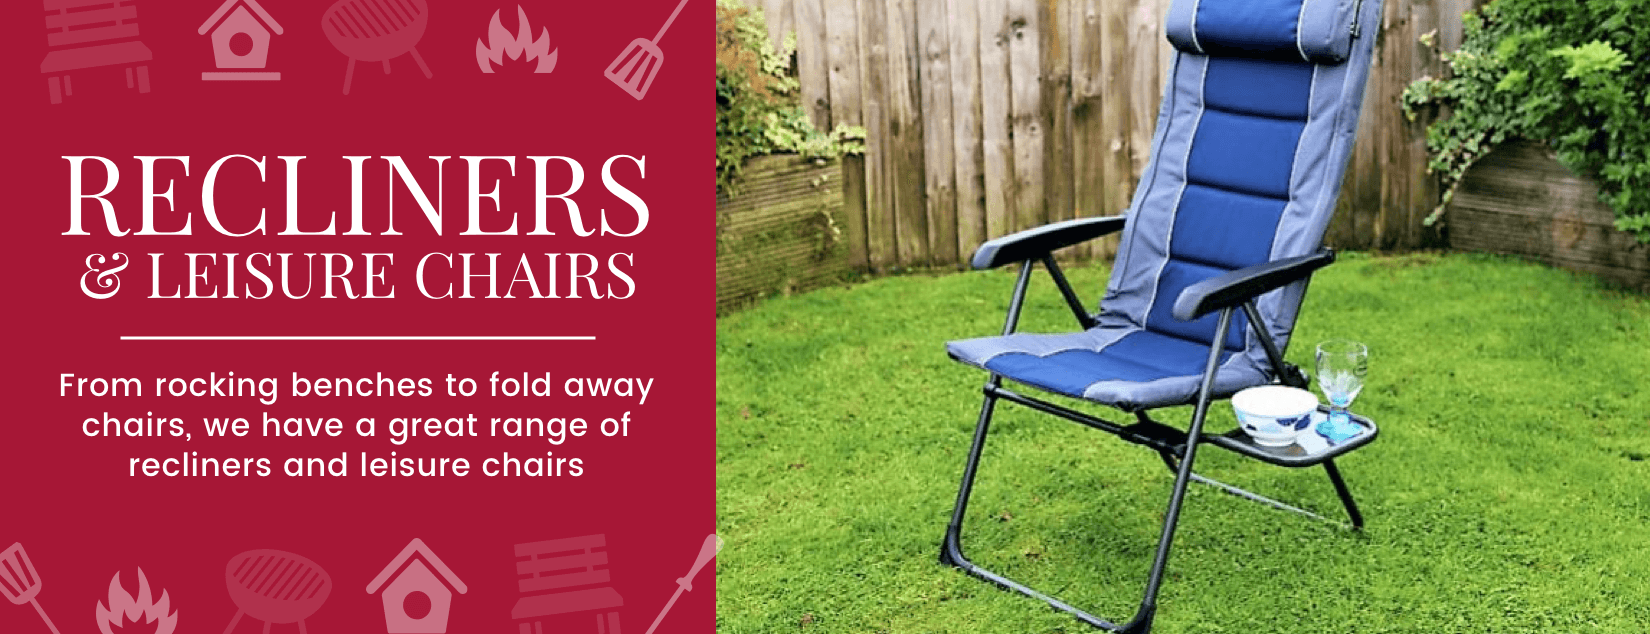 Recliners & Leisure chairs